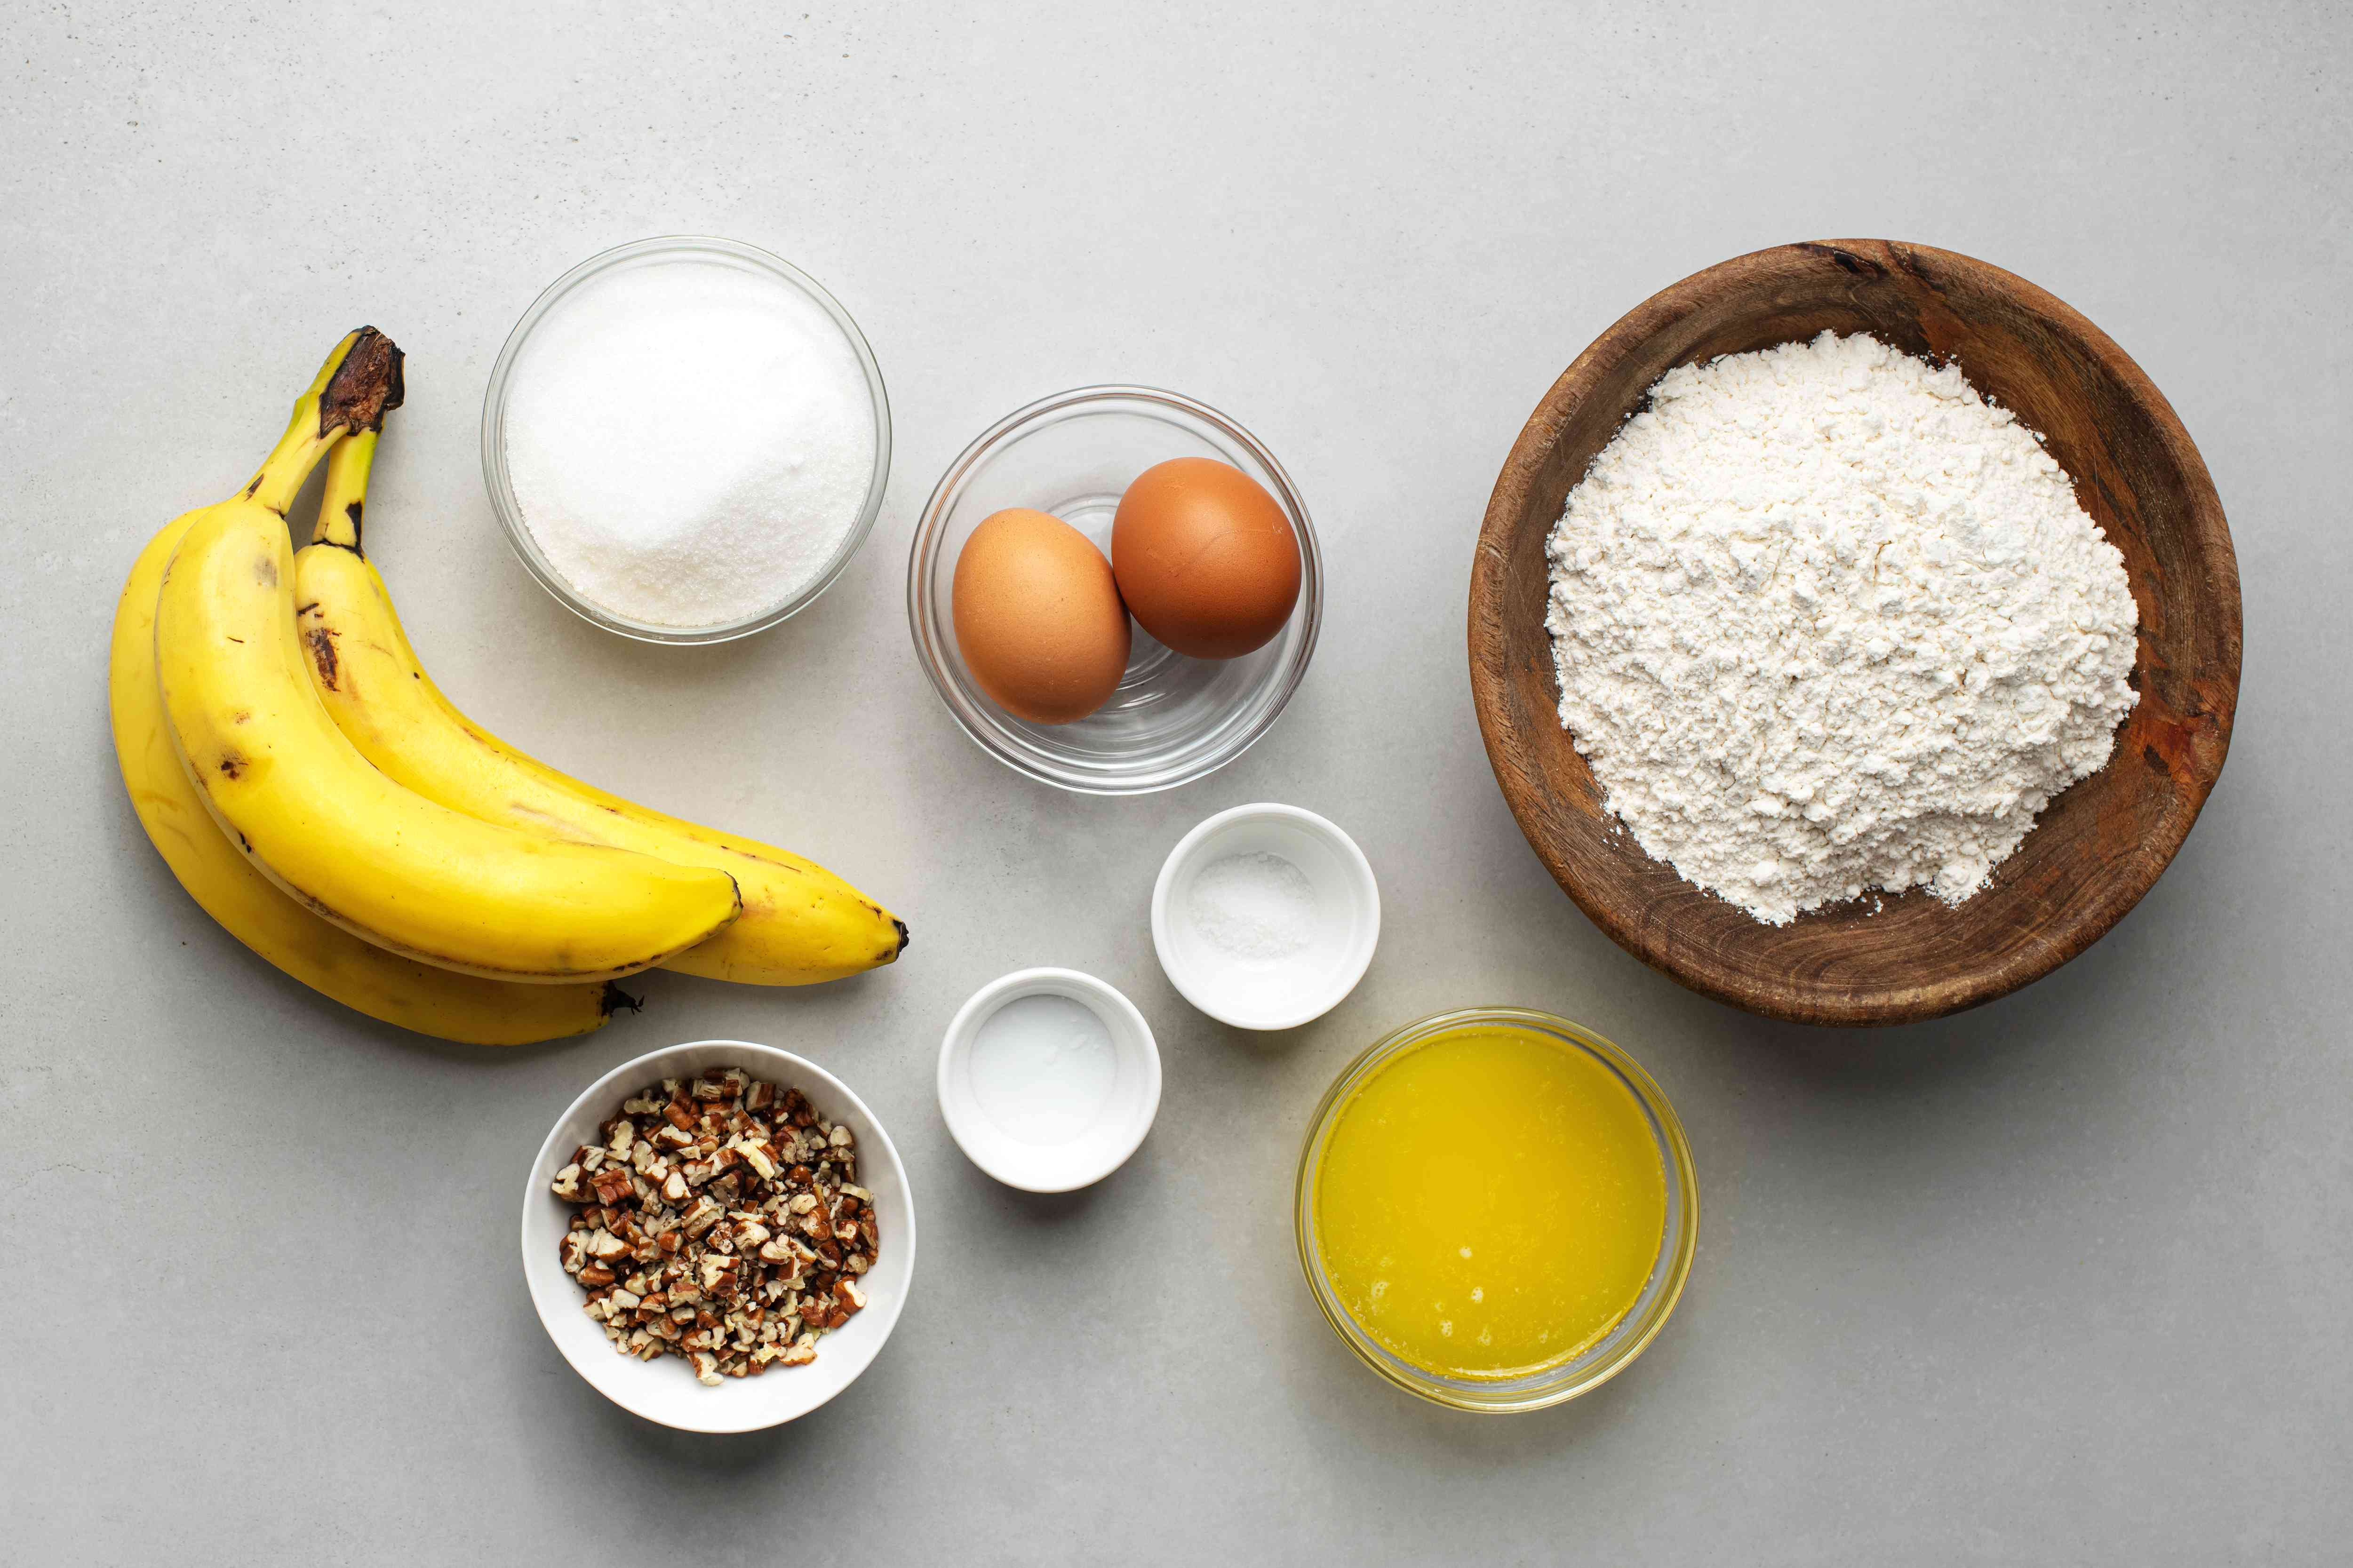 ingredients for banana nut bread